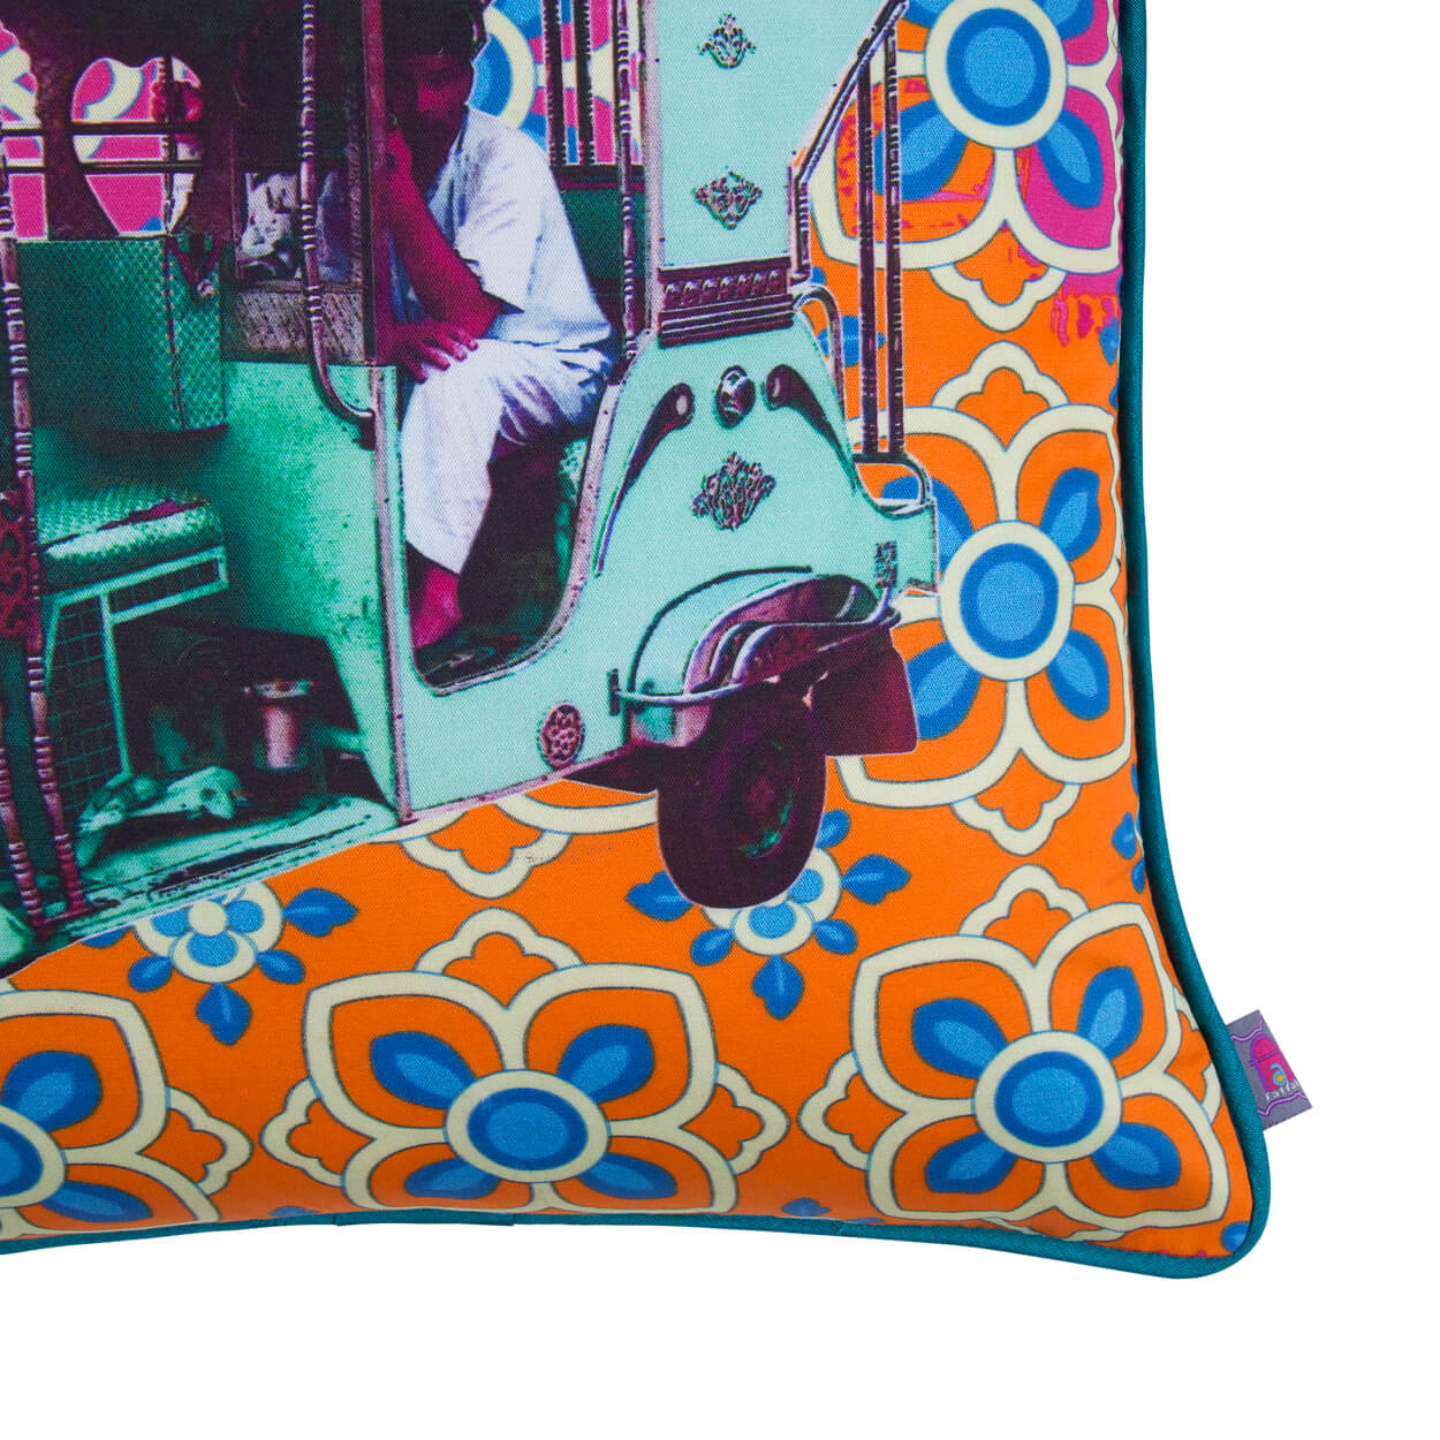 Turquoise Green Taxi Glaze Cotton Cushion Cover 16x16 Inches